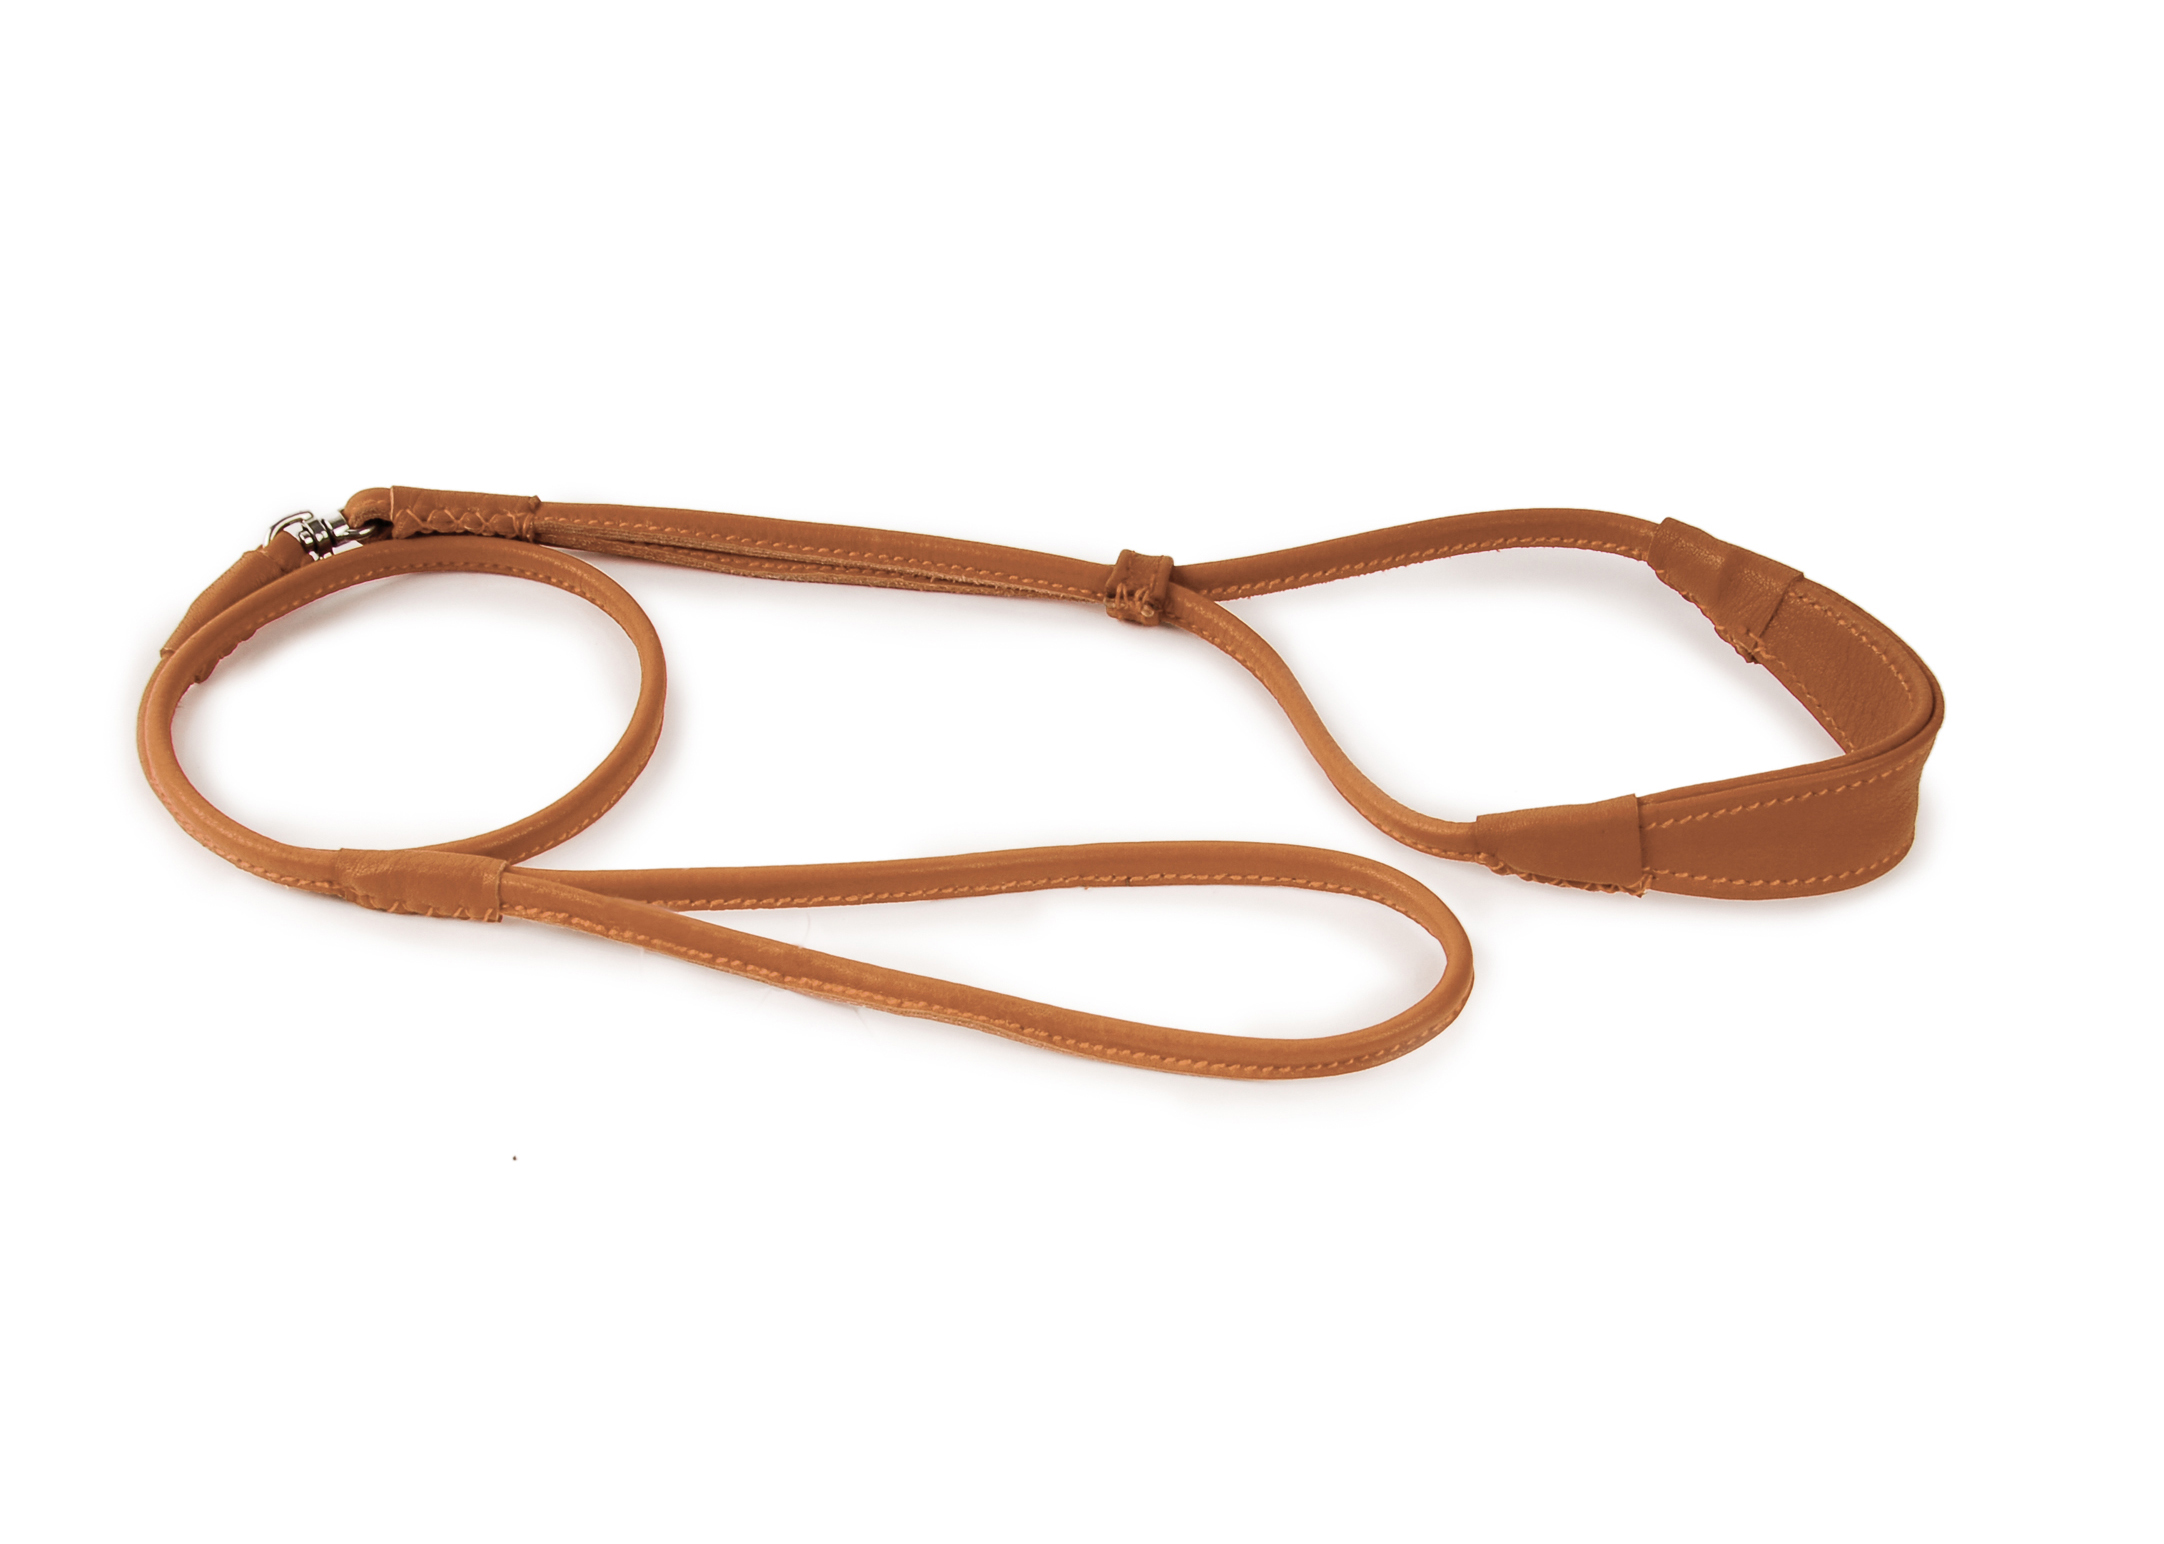 Dapper Dogs Comfort Show Lead Round Cow Leather S 5mm Tan Leather Comfort Lead